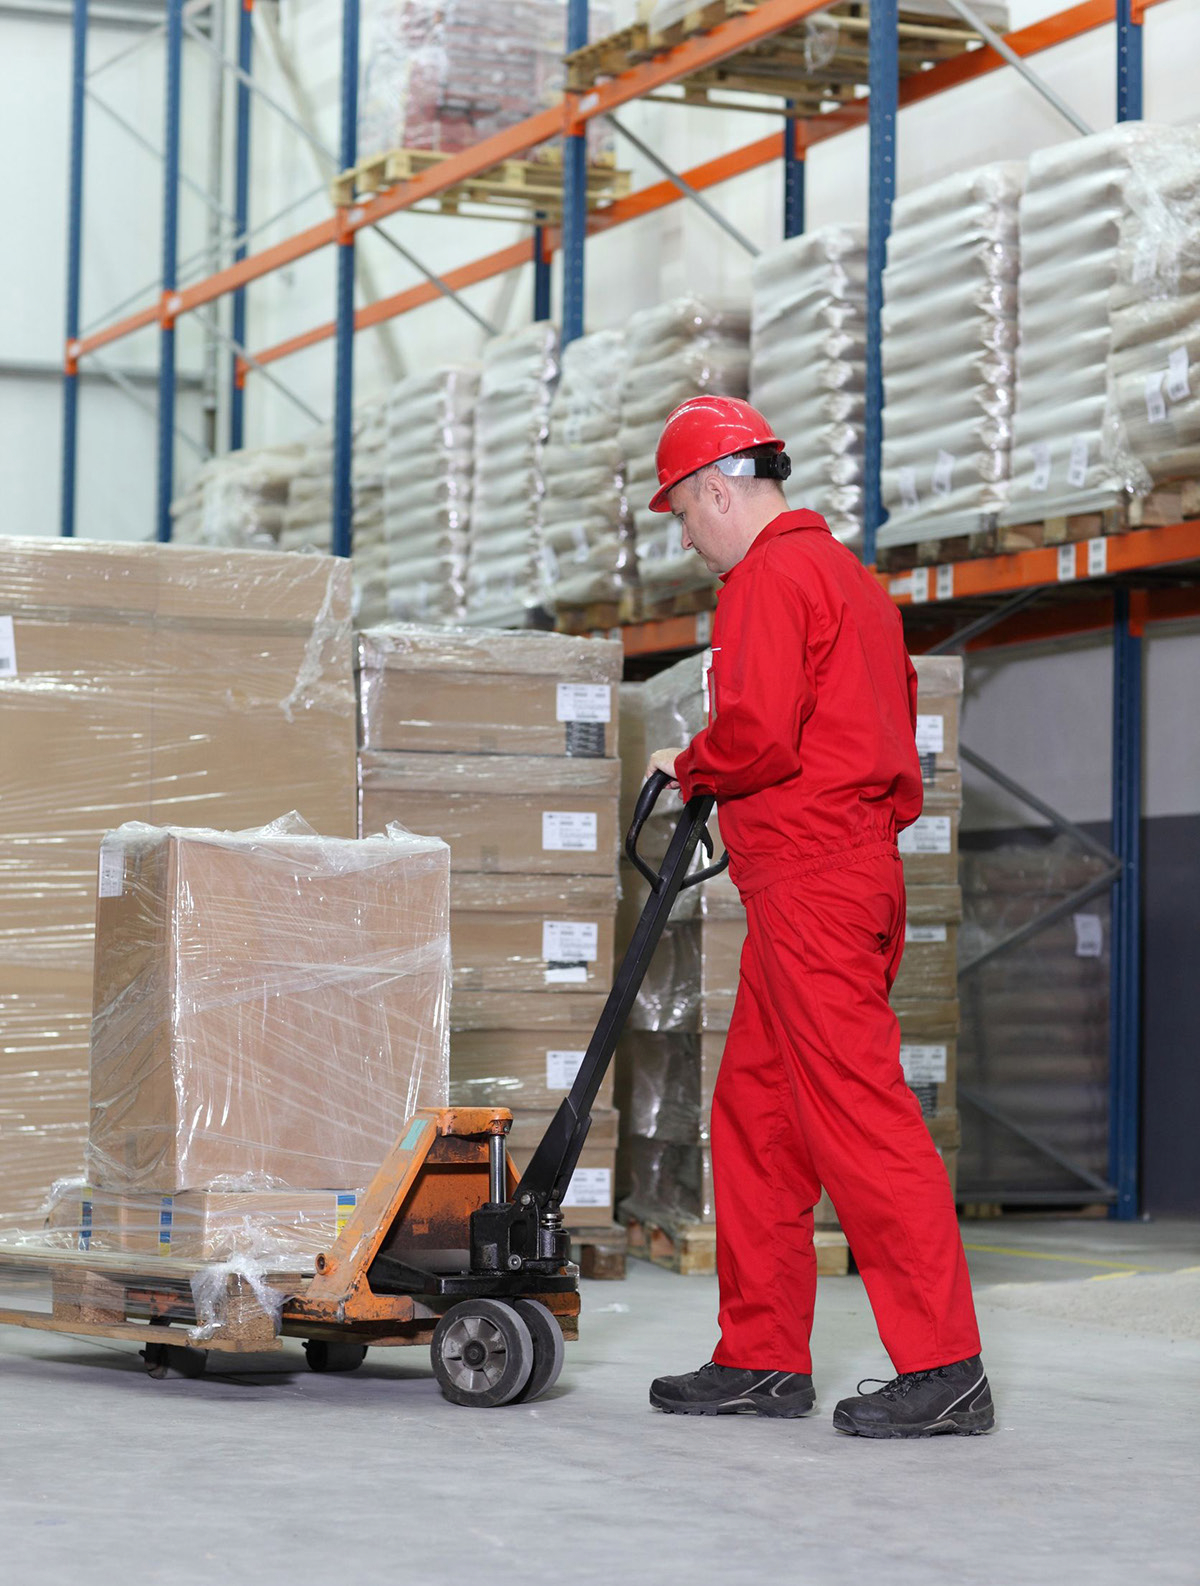 Young Worker Injured When Manual Pallet Jack Accelerates ...